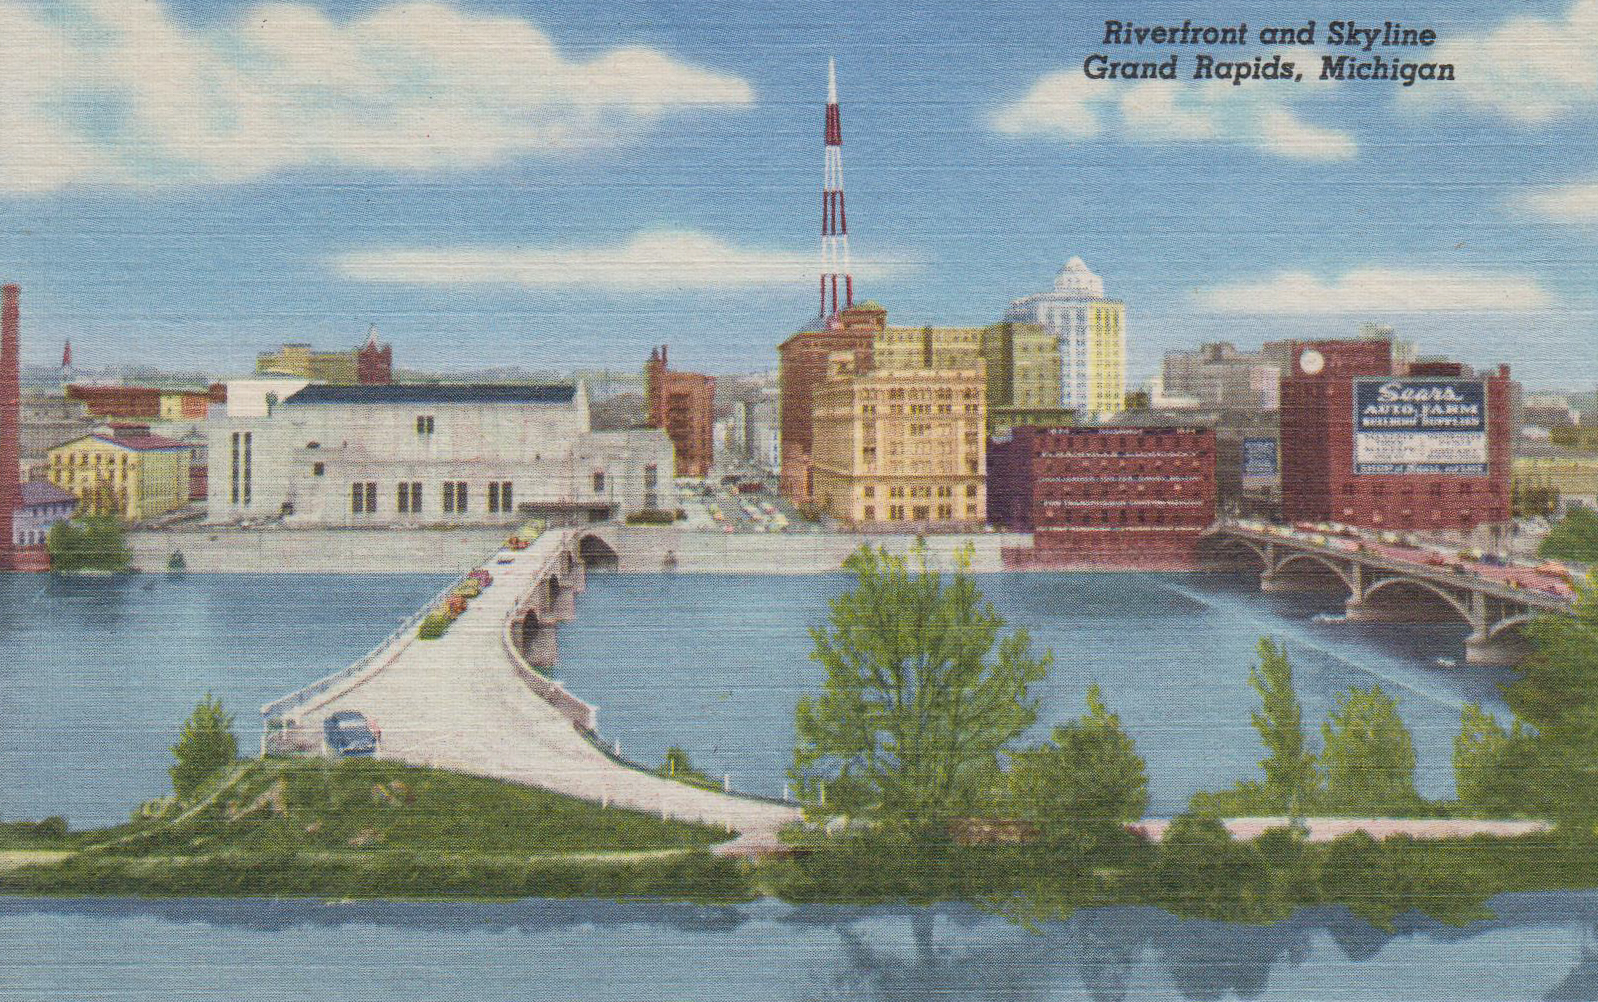 Riverfront and Skyline, Grand Rapids, MI – circa 1950